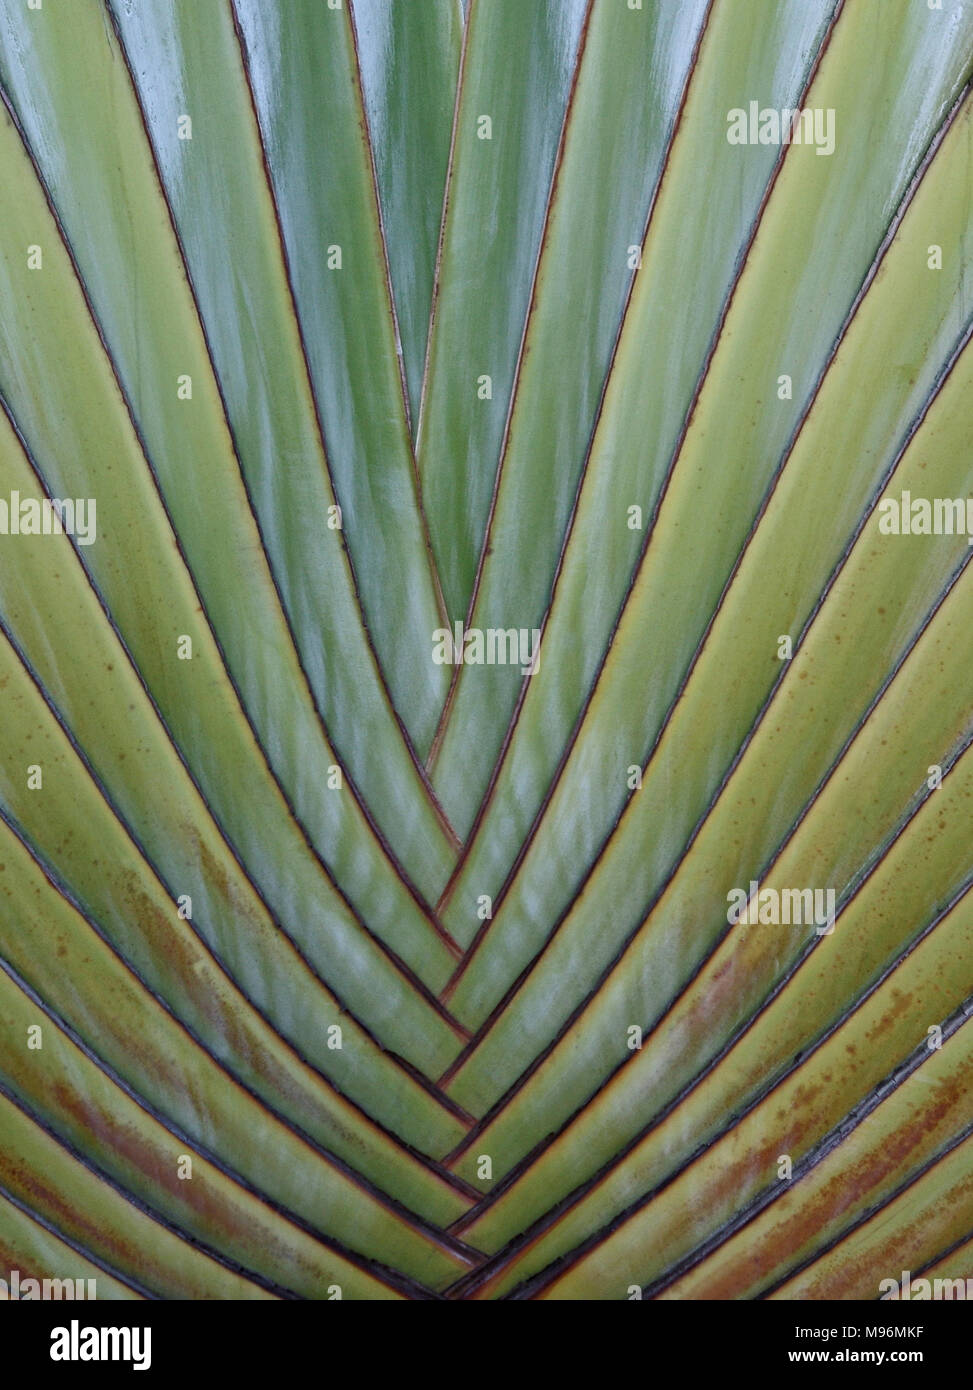 Detail of the Travellers Palm - Stock Image